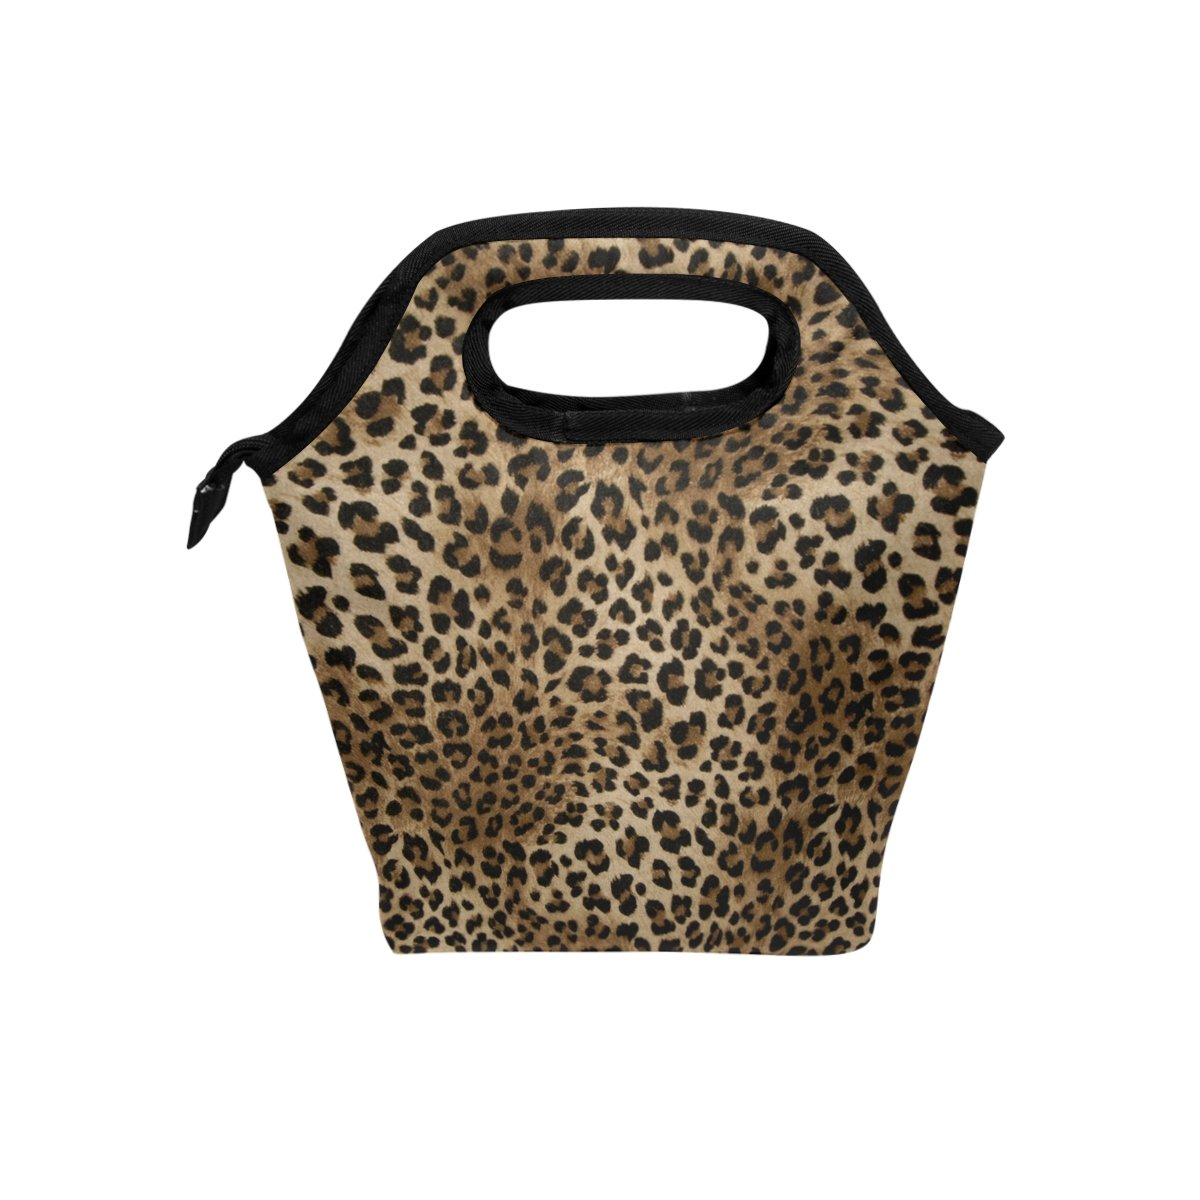 Naanle Animal Print Insulated Zipper Lunch Bag Cooler Tote Bag for Adult Teens Kids Girls Boys Men Women, Leopard Print Lunch Boxes Lunchboxes Meal Prep Handbag for Outdoors School Office